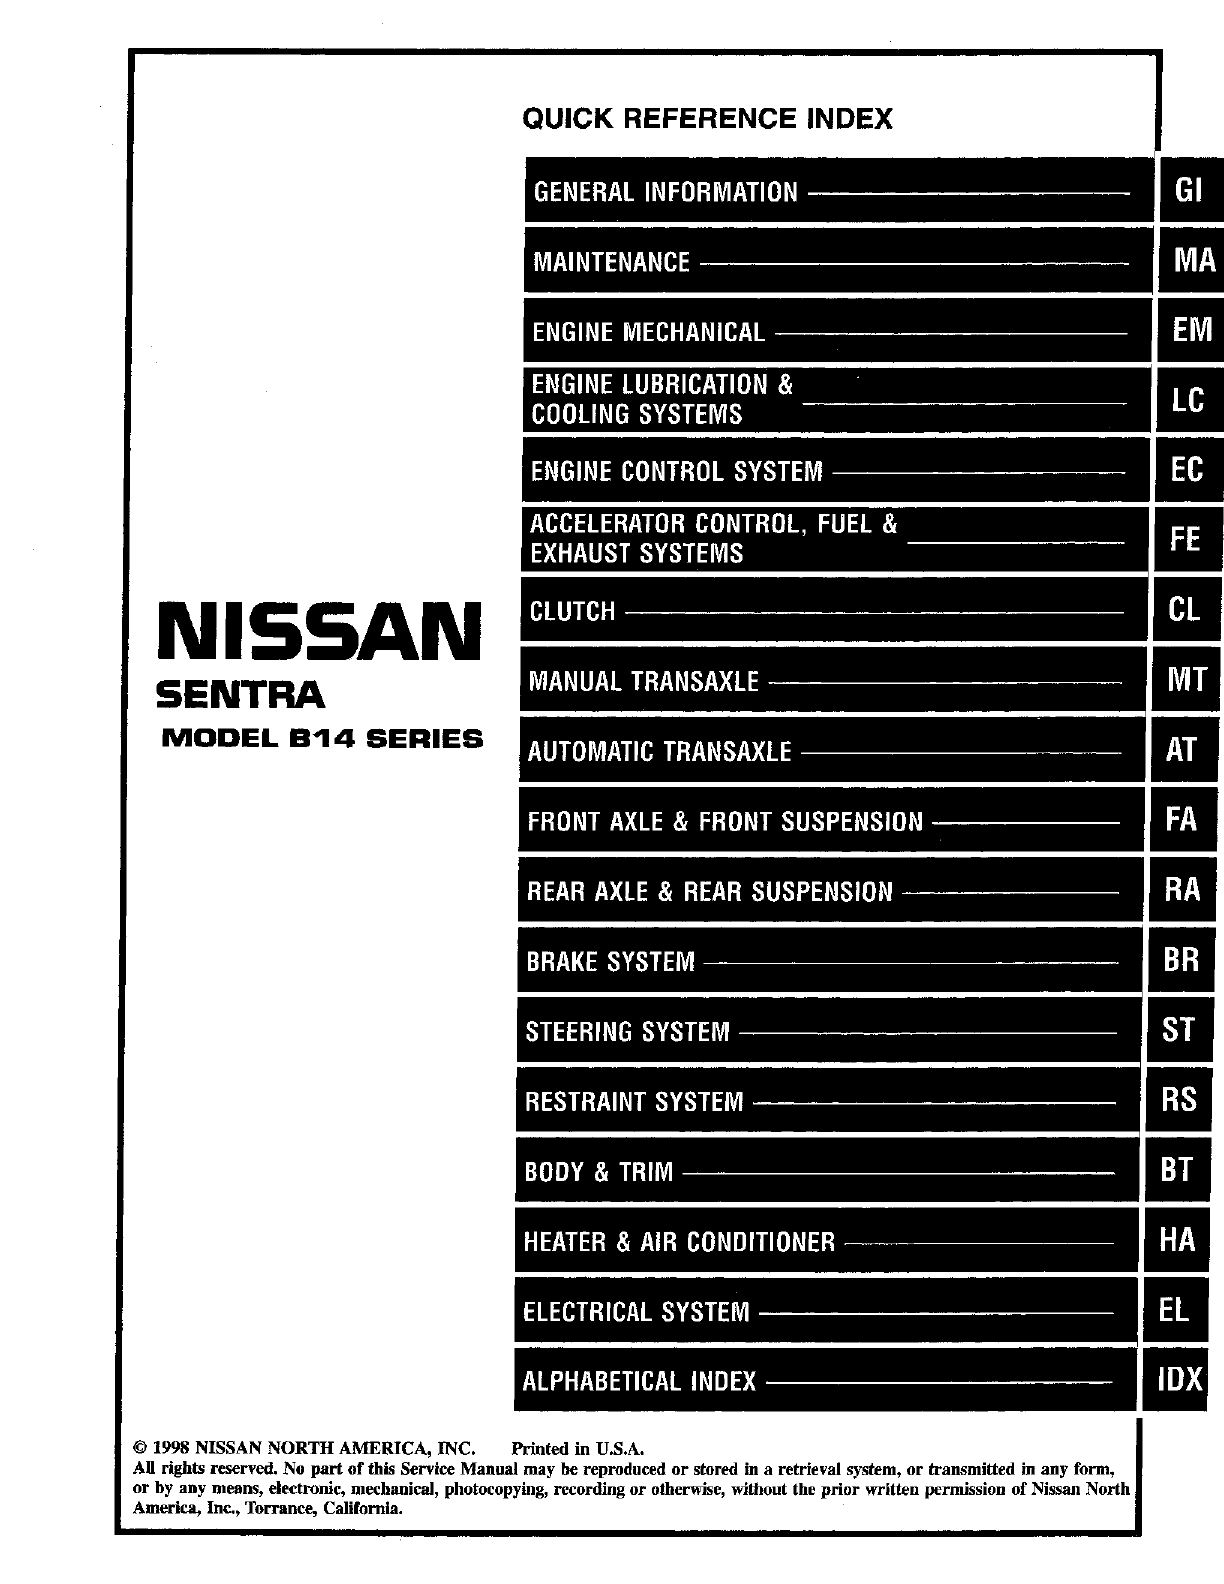 Nissan Sentra Service Manual: Intermittent incident